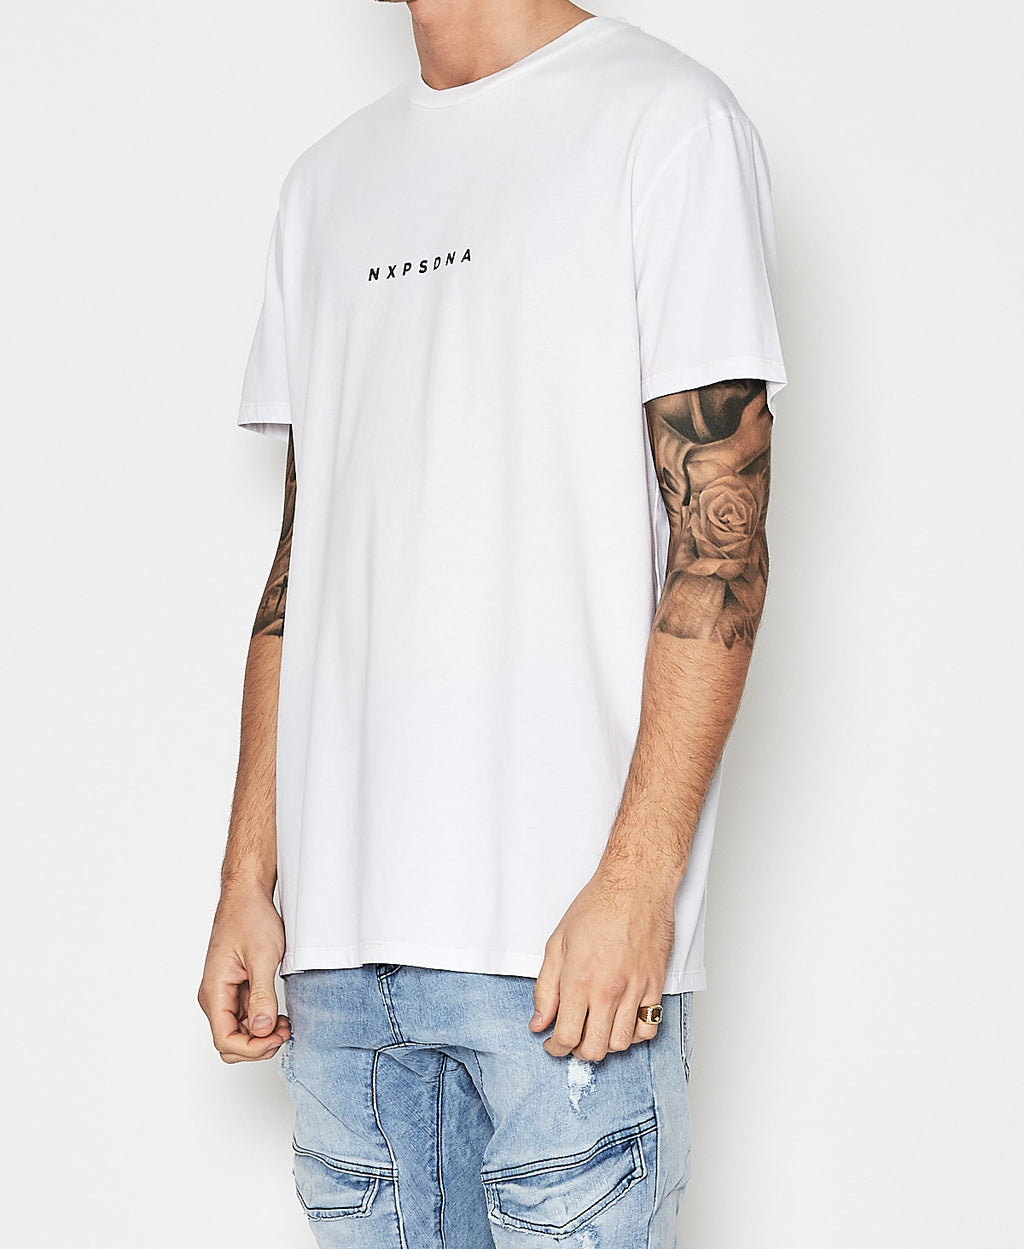 Drowning Relaxed Fit Tee